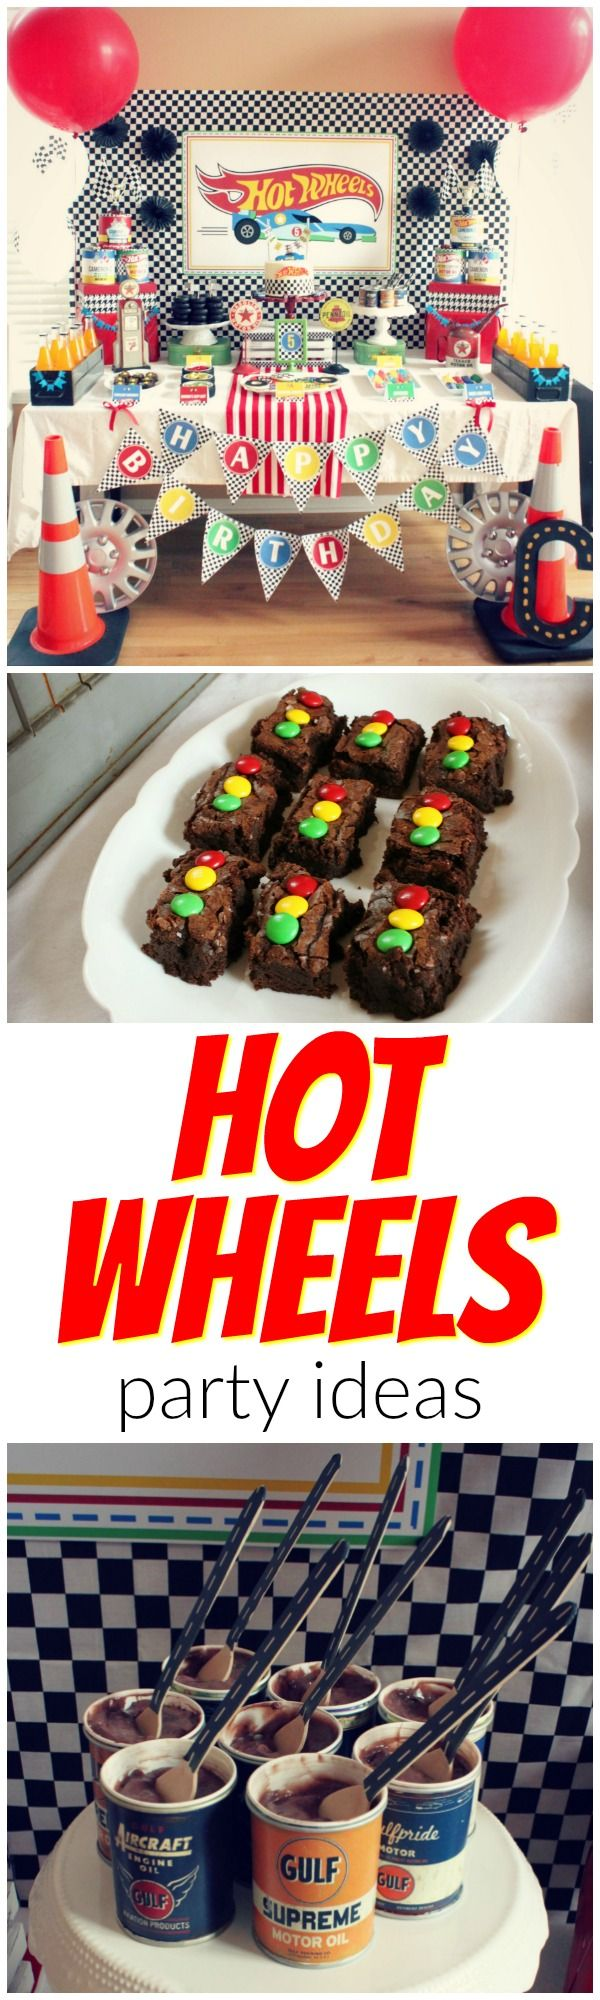 Awesome HOT WHEELS party ideas!